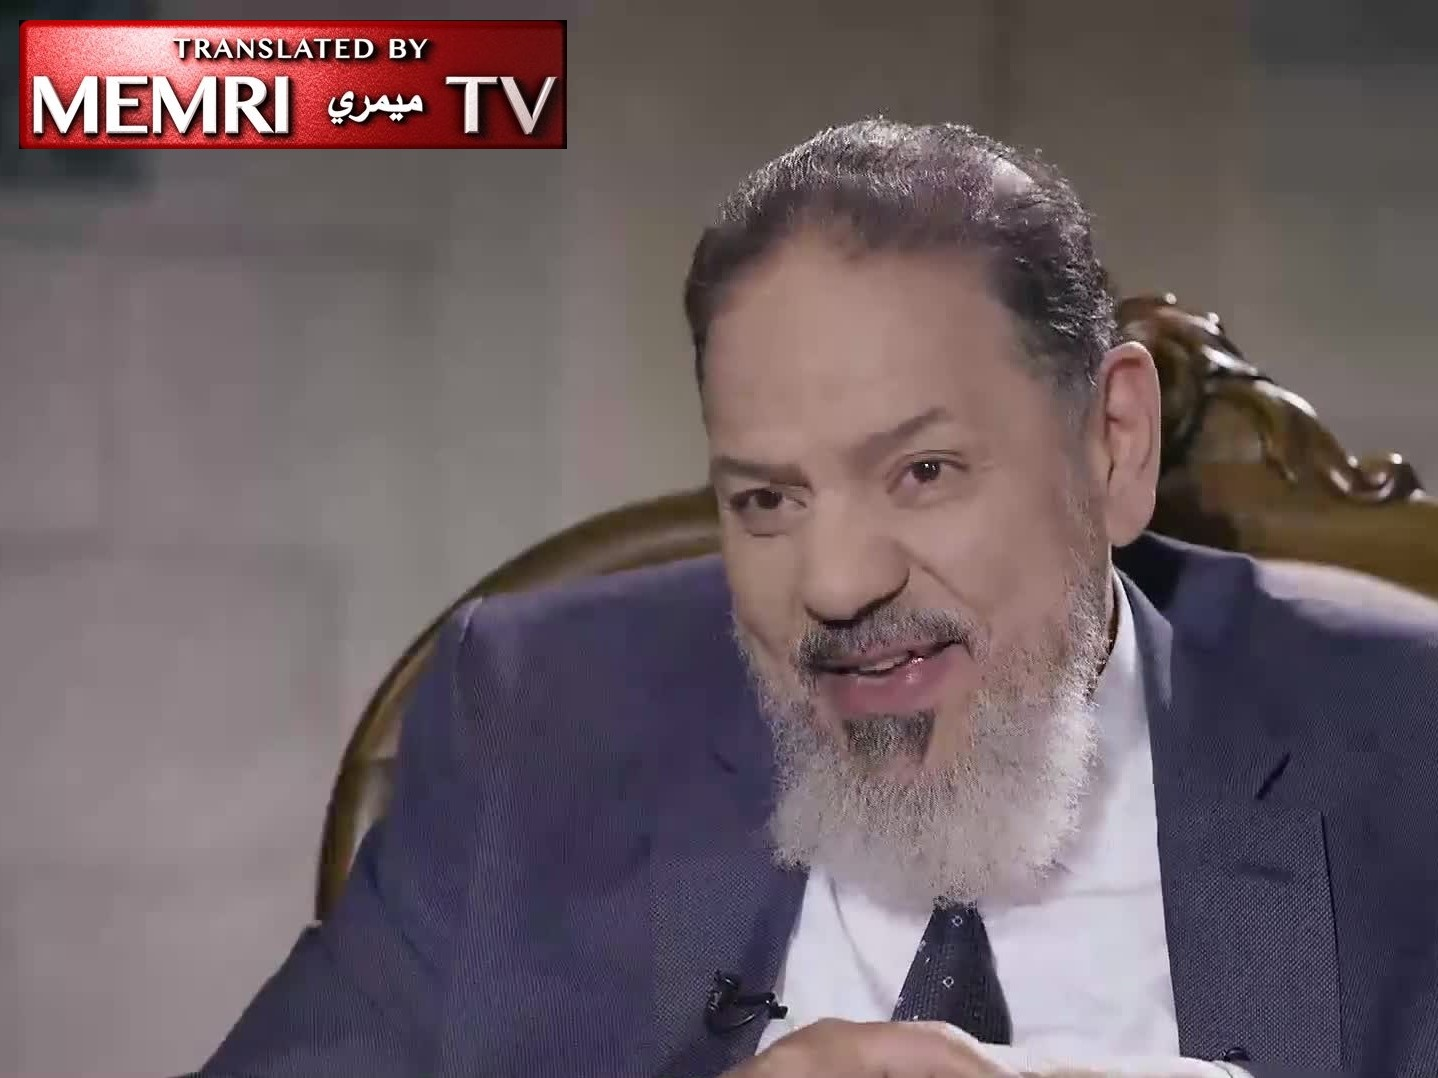 Egyptian Islamist Lawyer Muntassir Al-Zayyat: All the Political Forces in Egypt Celebrated Sadat's Assassination